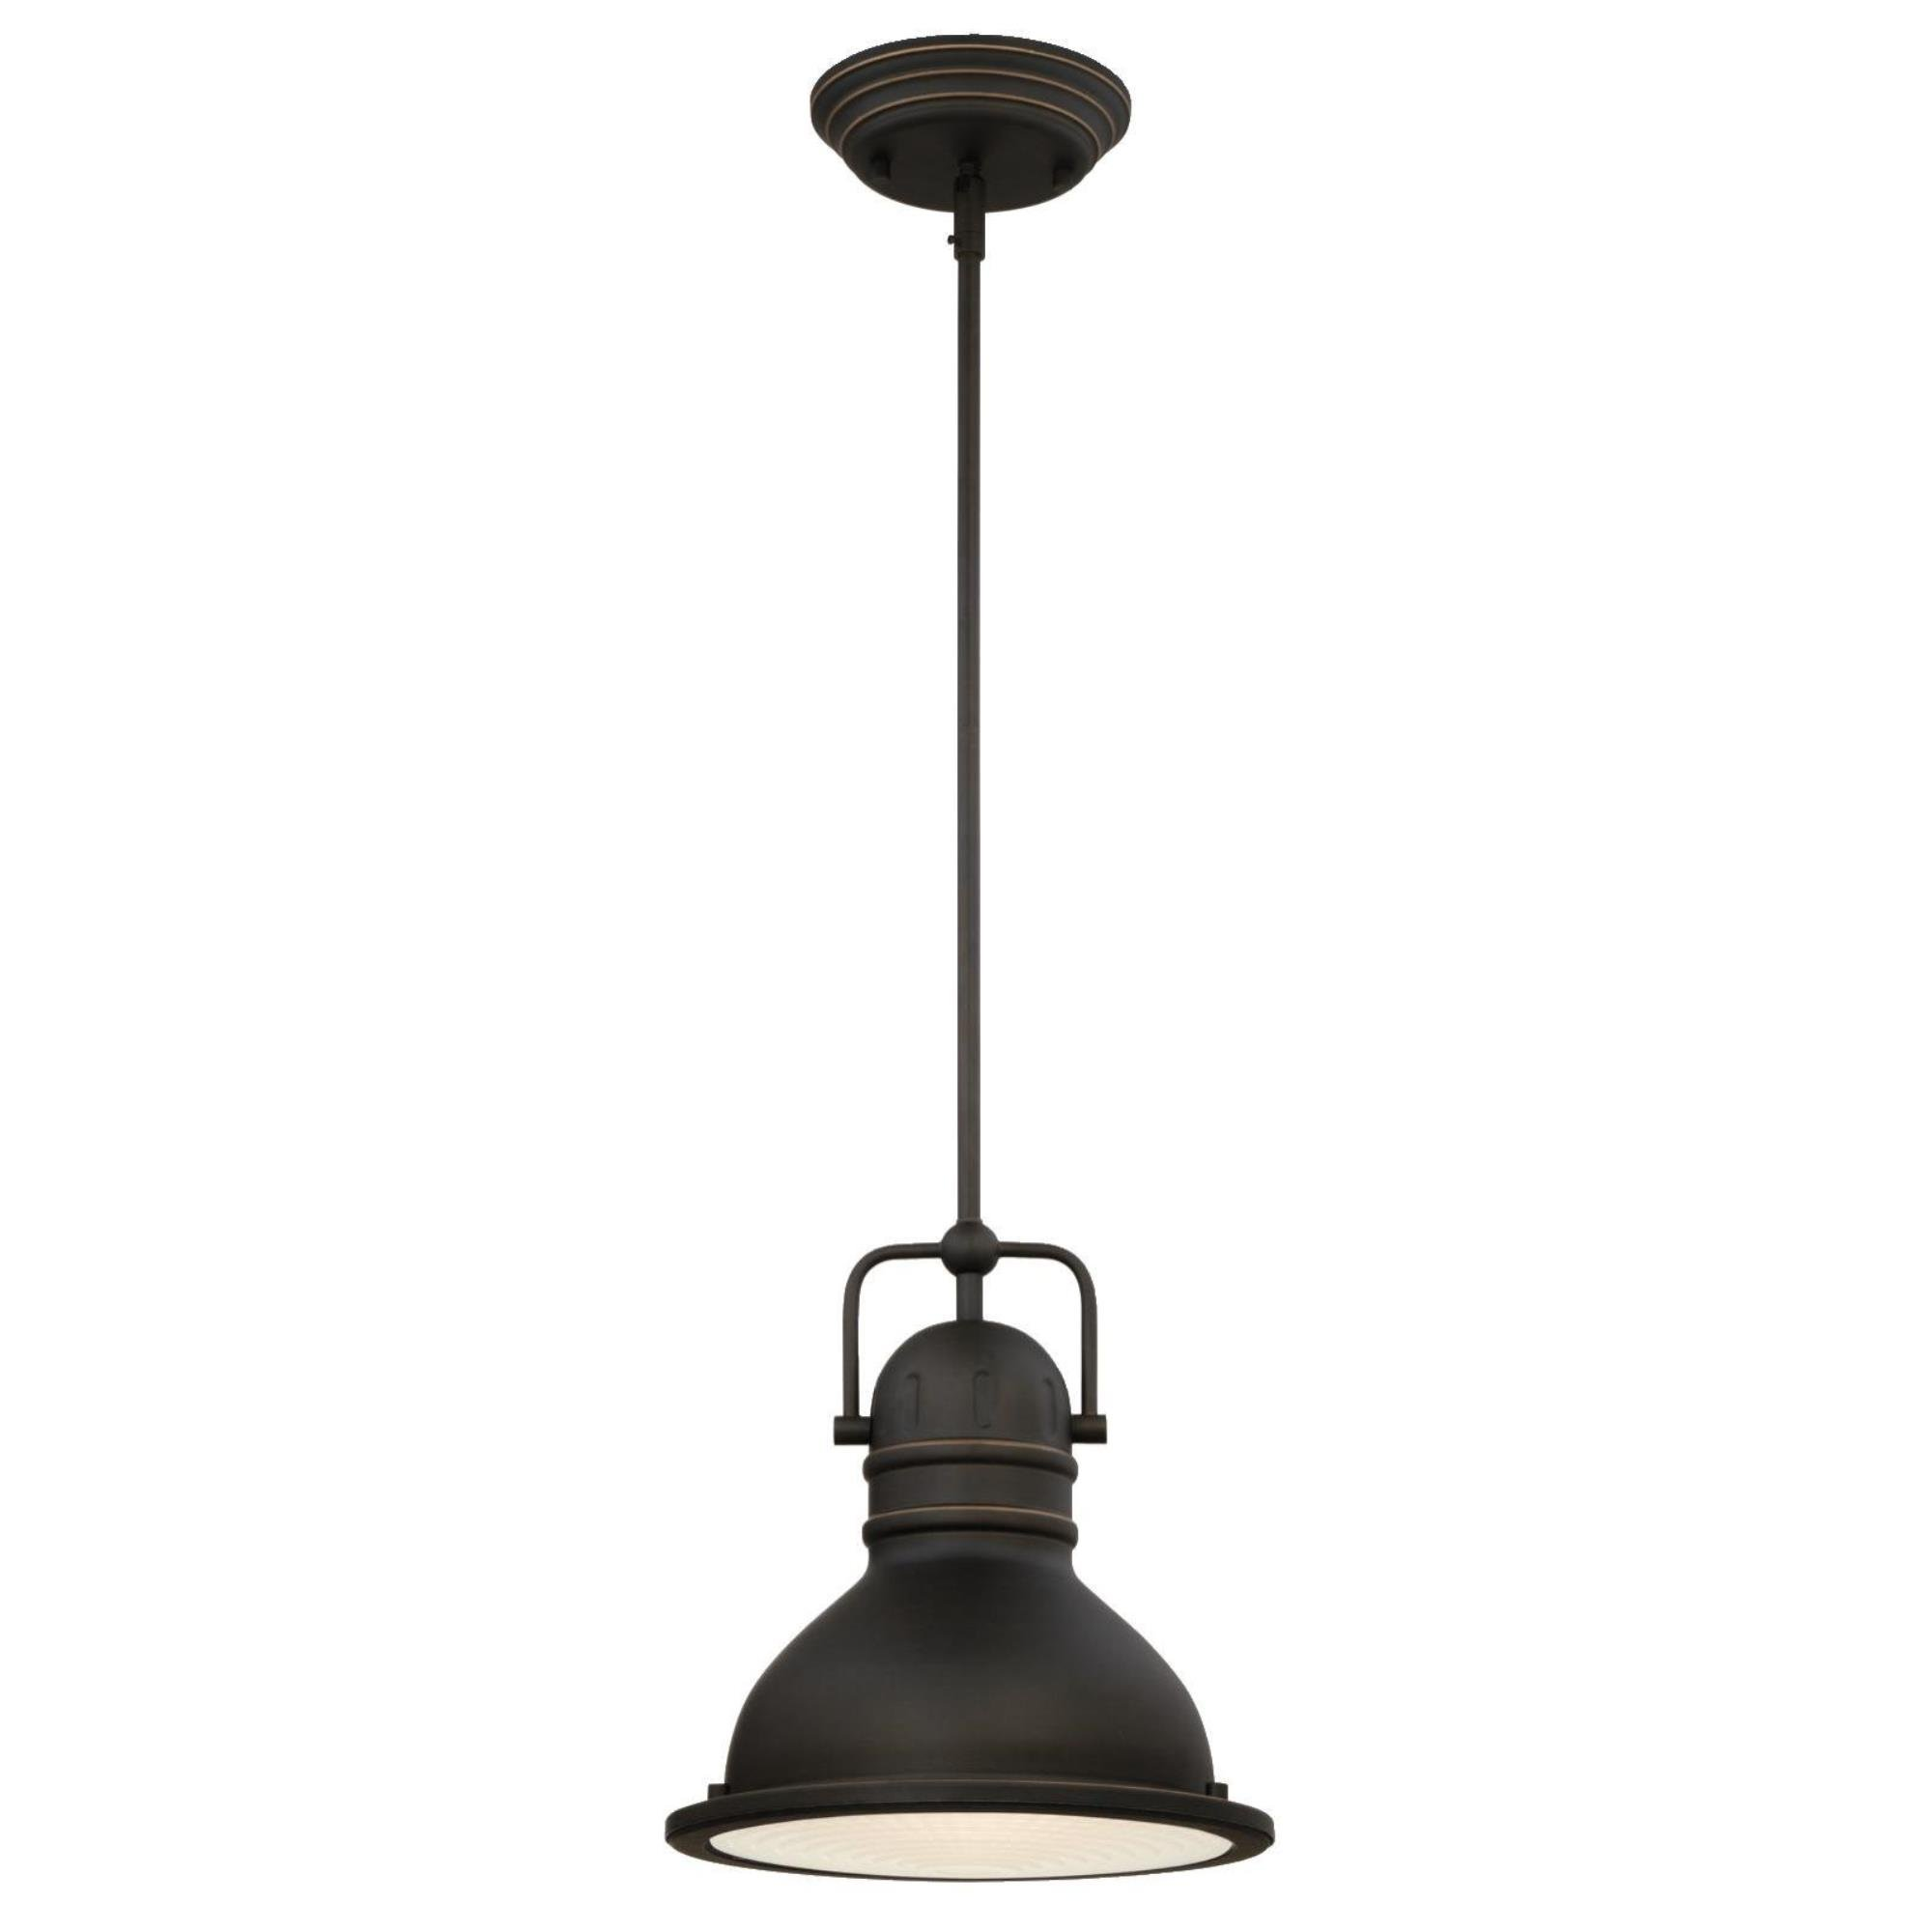 Westinghouse 63087B Boswell One-Light LED Indoor Pendant, Oil Rubbed Bronze Finish with Highlights and Frosted Prismatic Acrylic by Westinghouse